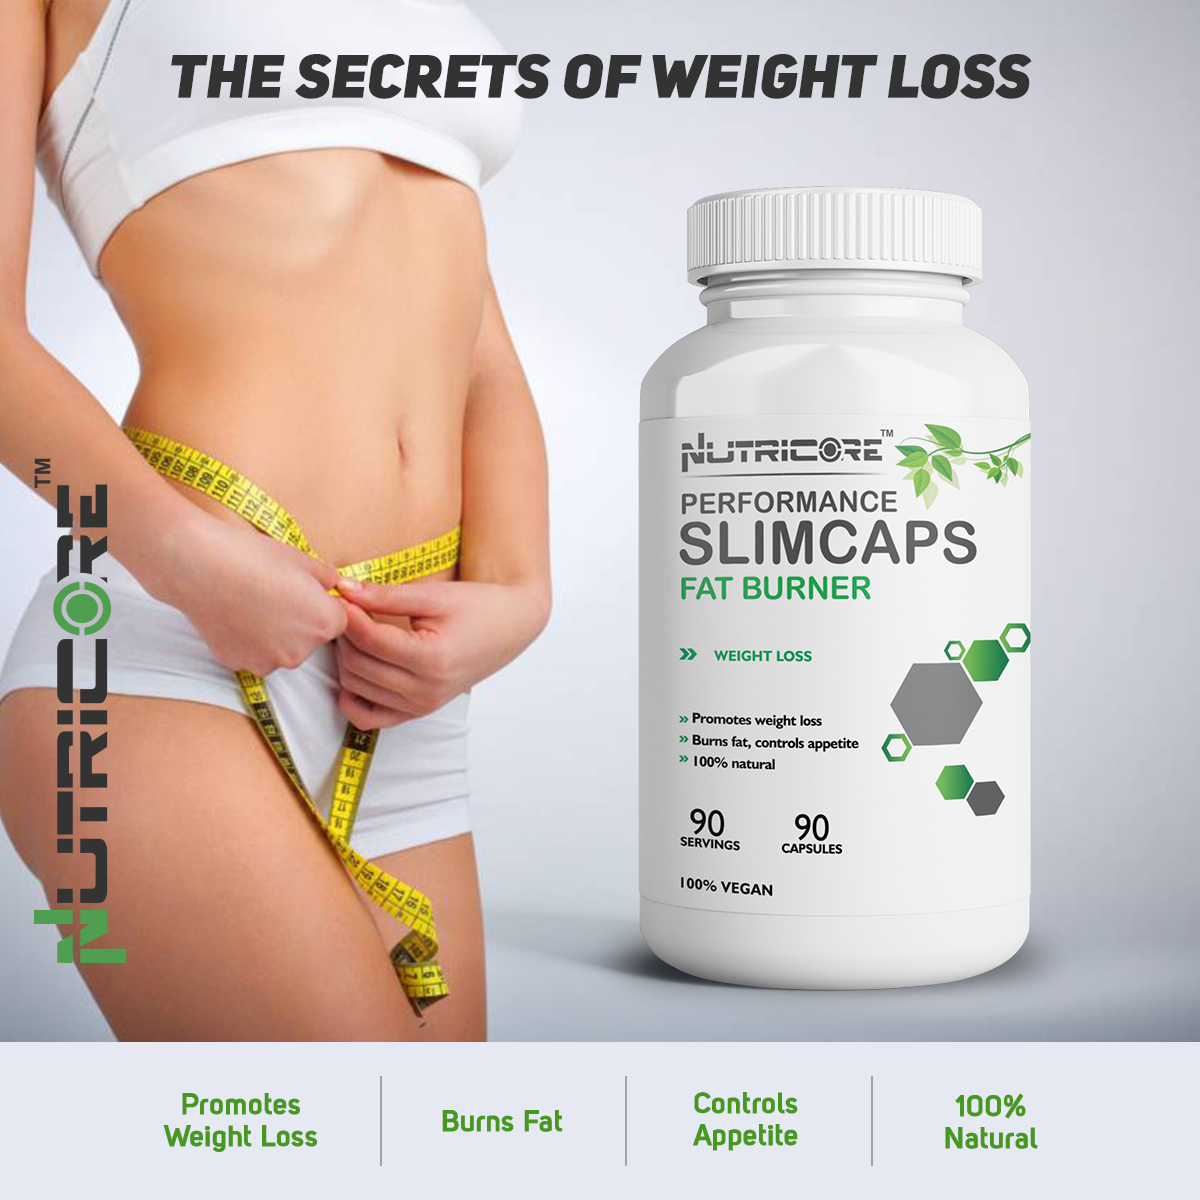 Slimcaps Fat Burner Weight Loss Capsules